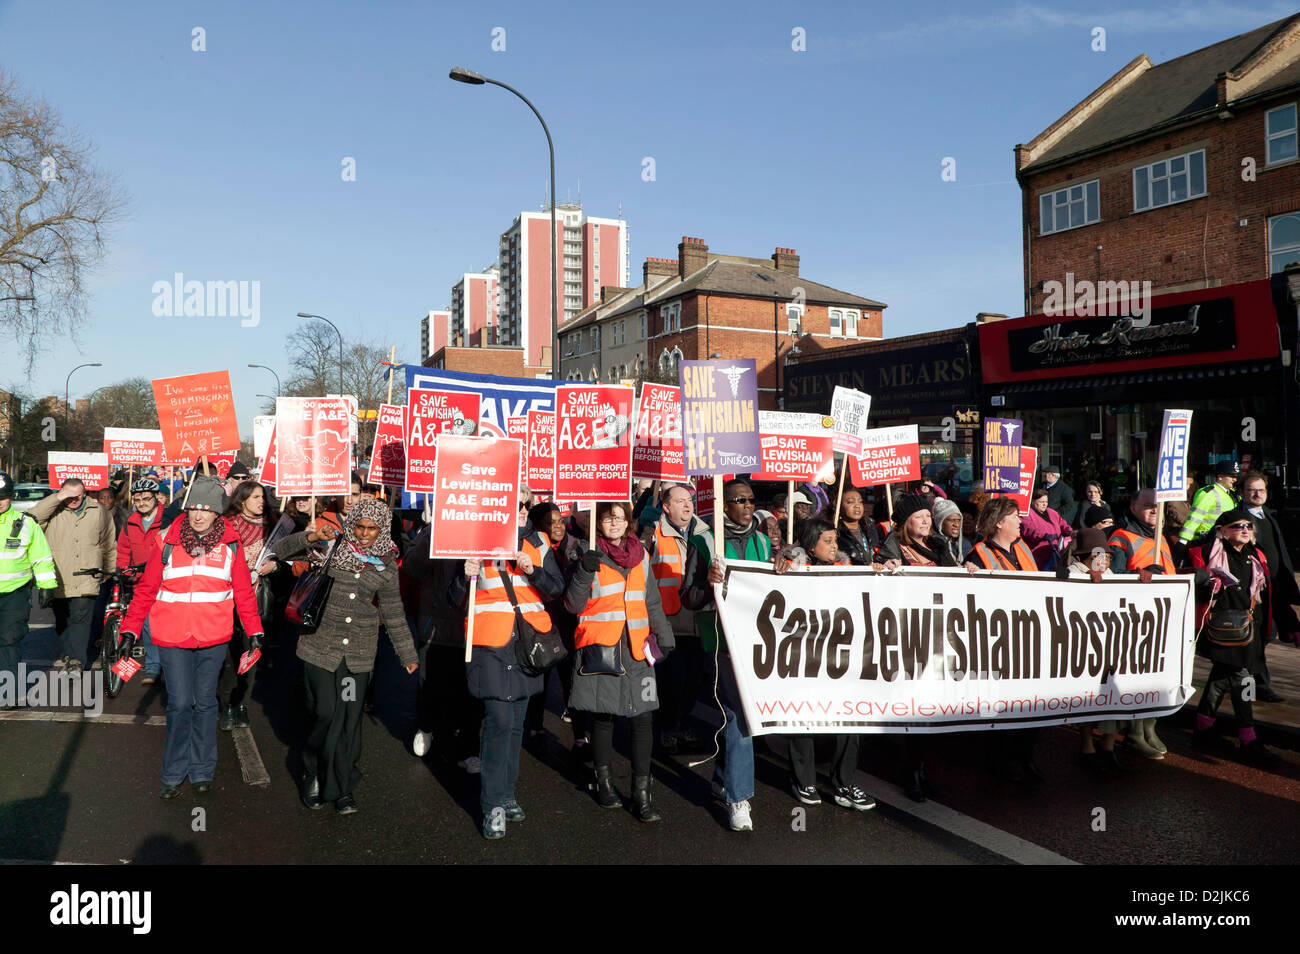 Thousands of Demonstrators  marched  against Lewisham NHS cuts to the Maternity and A&E departments - Stock Image